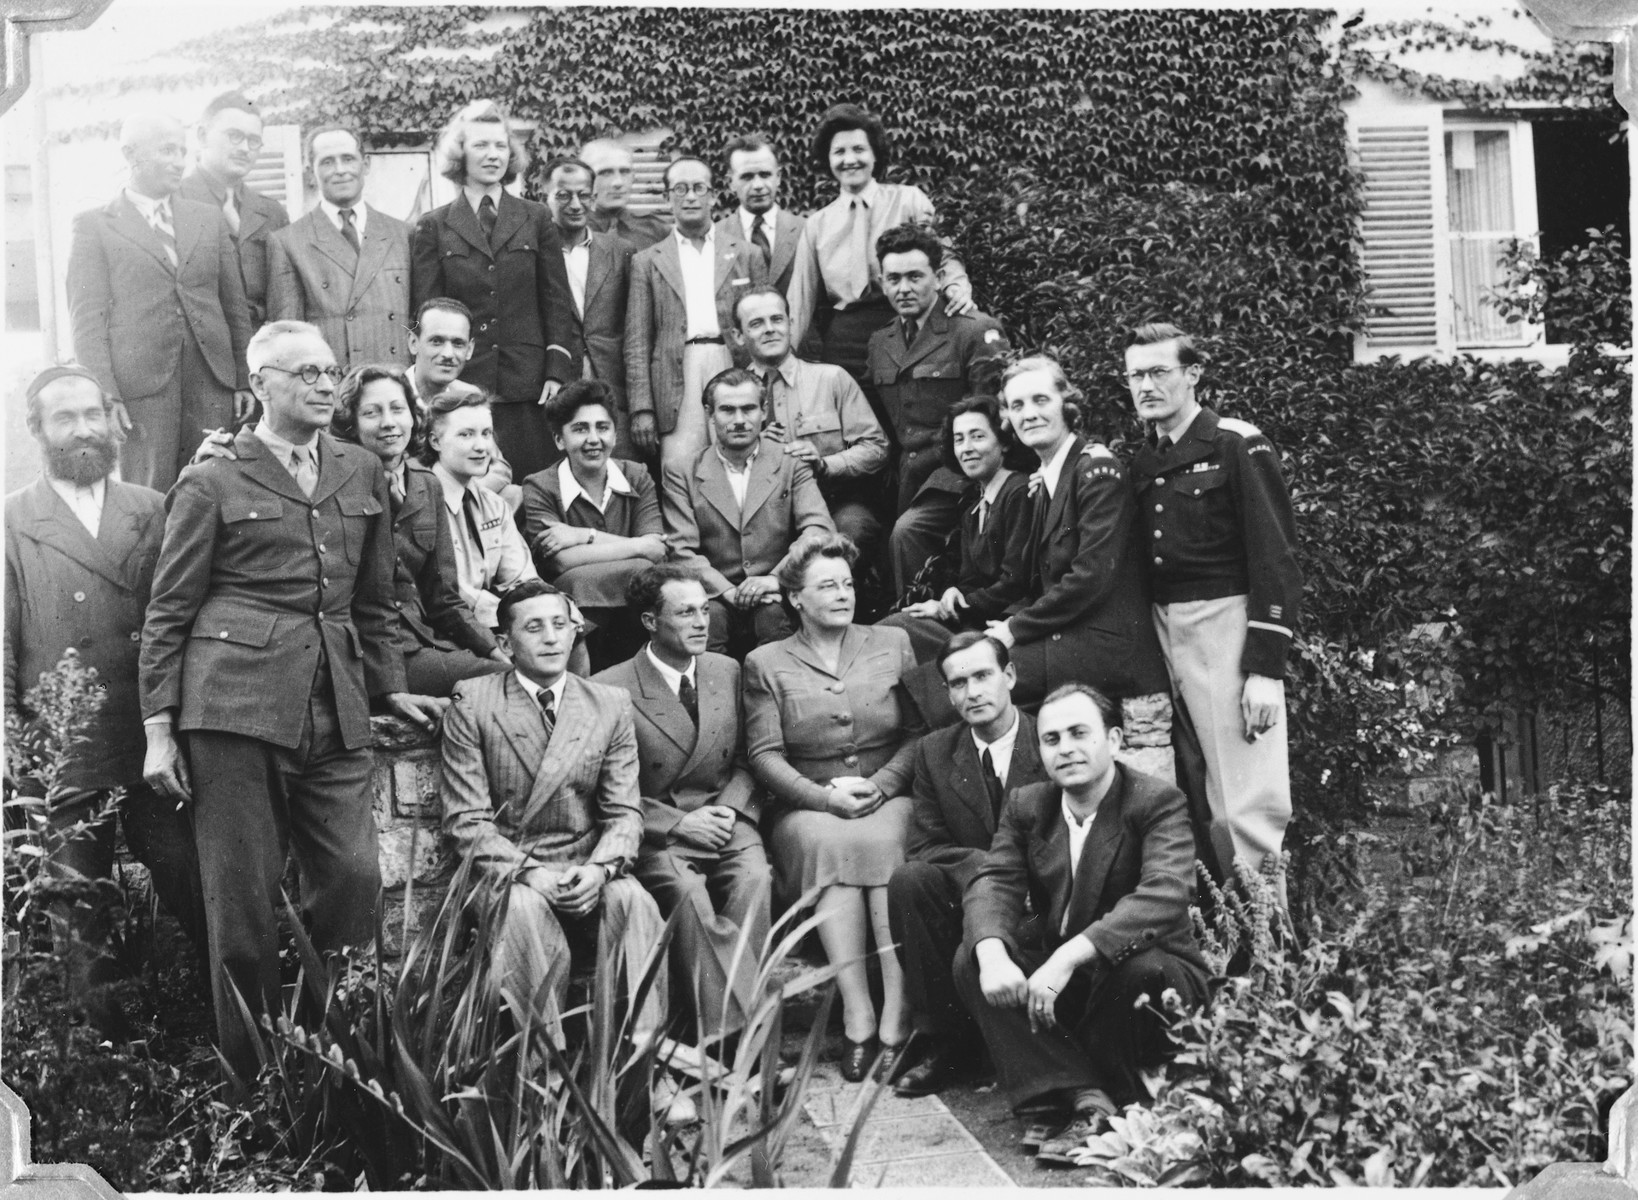 Group portrait of DPs and UNRRA workers in the Windsheim displaced persons' camp.  Pictured in second row on the far right is Tony Pritchard, director of the Windsheim camp and husband of the donor.